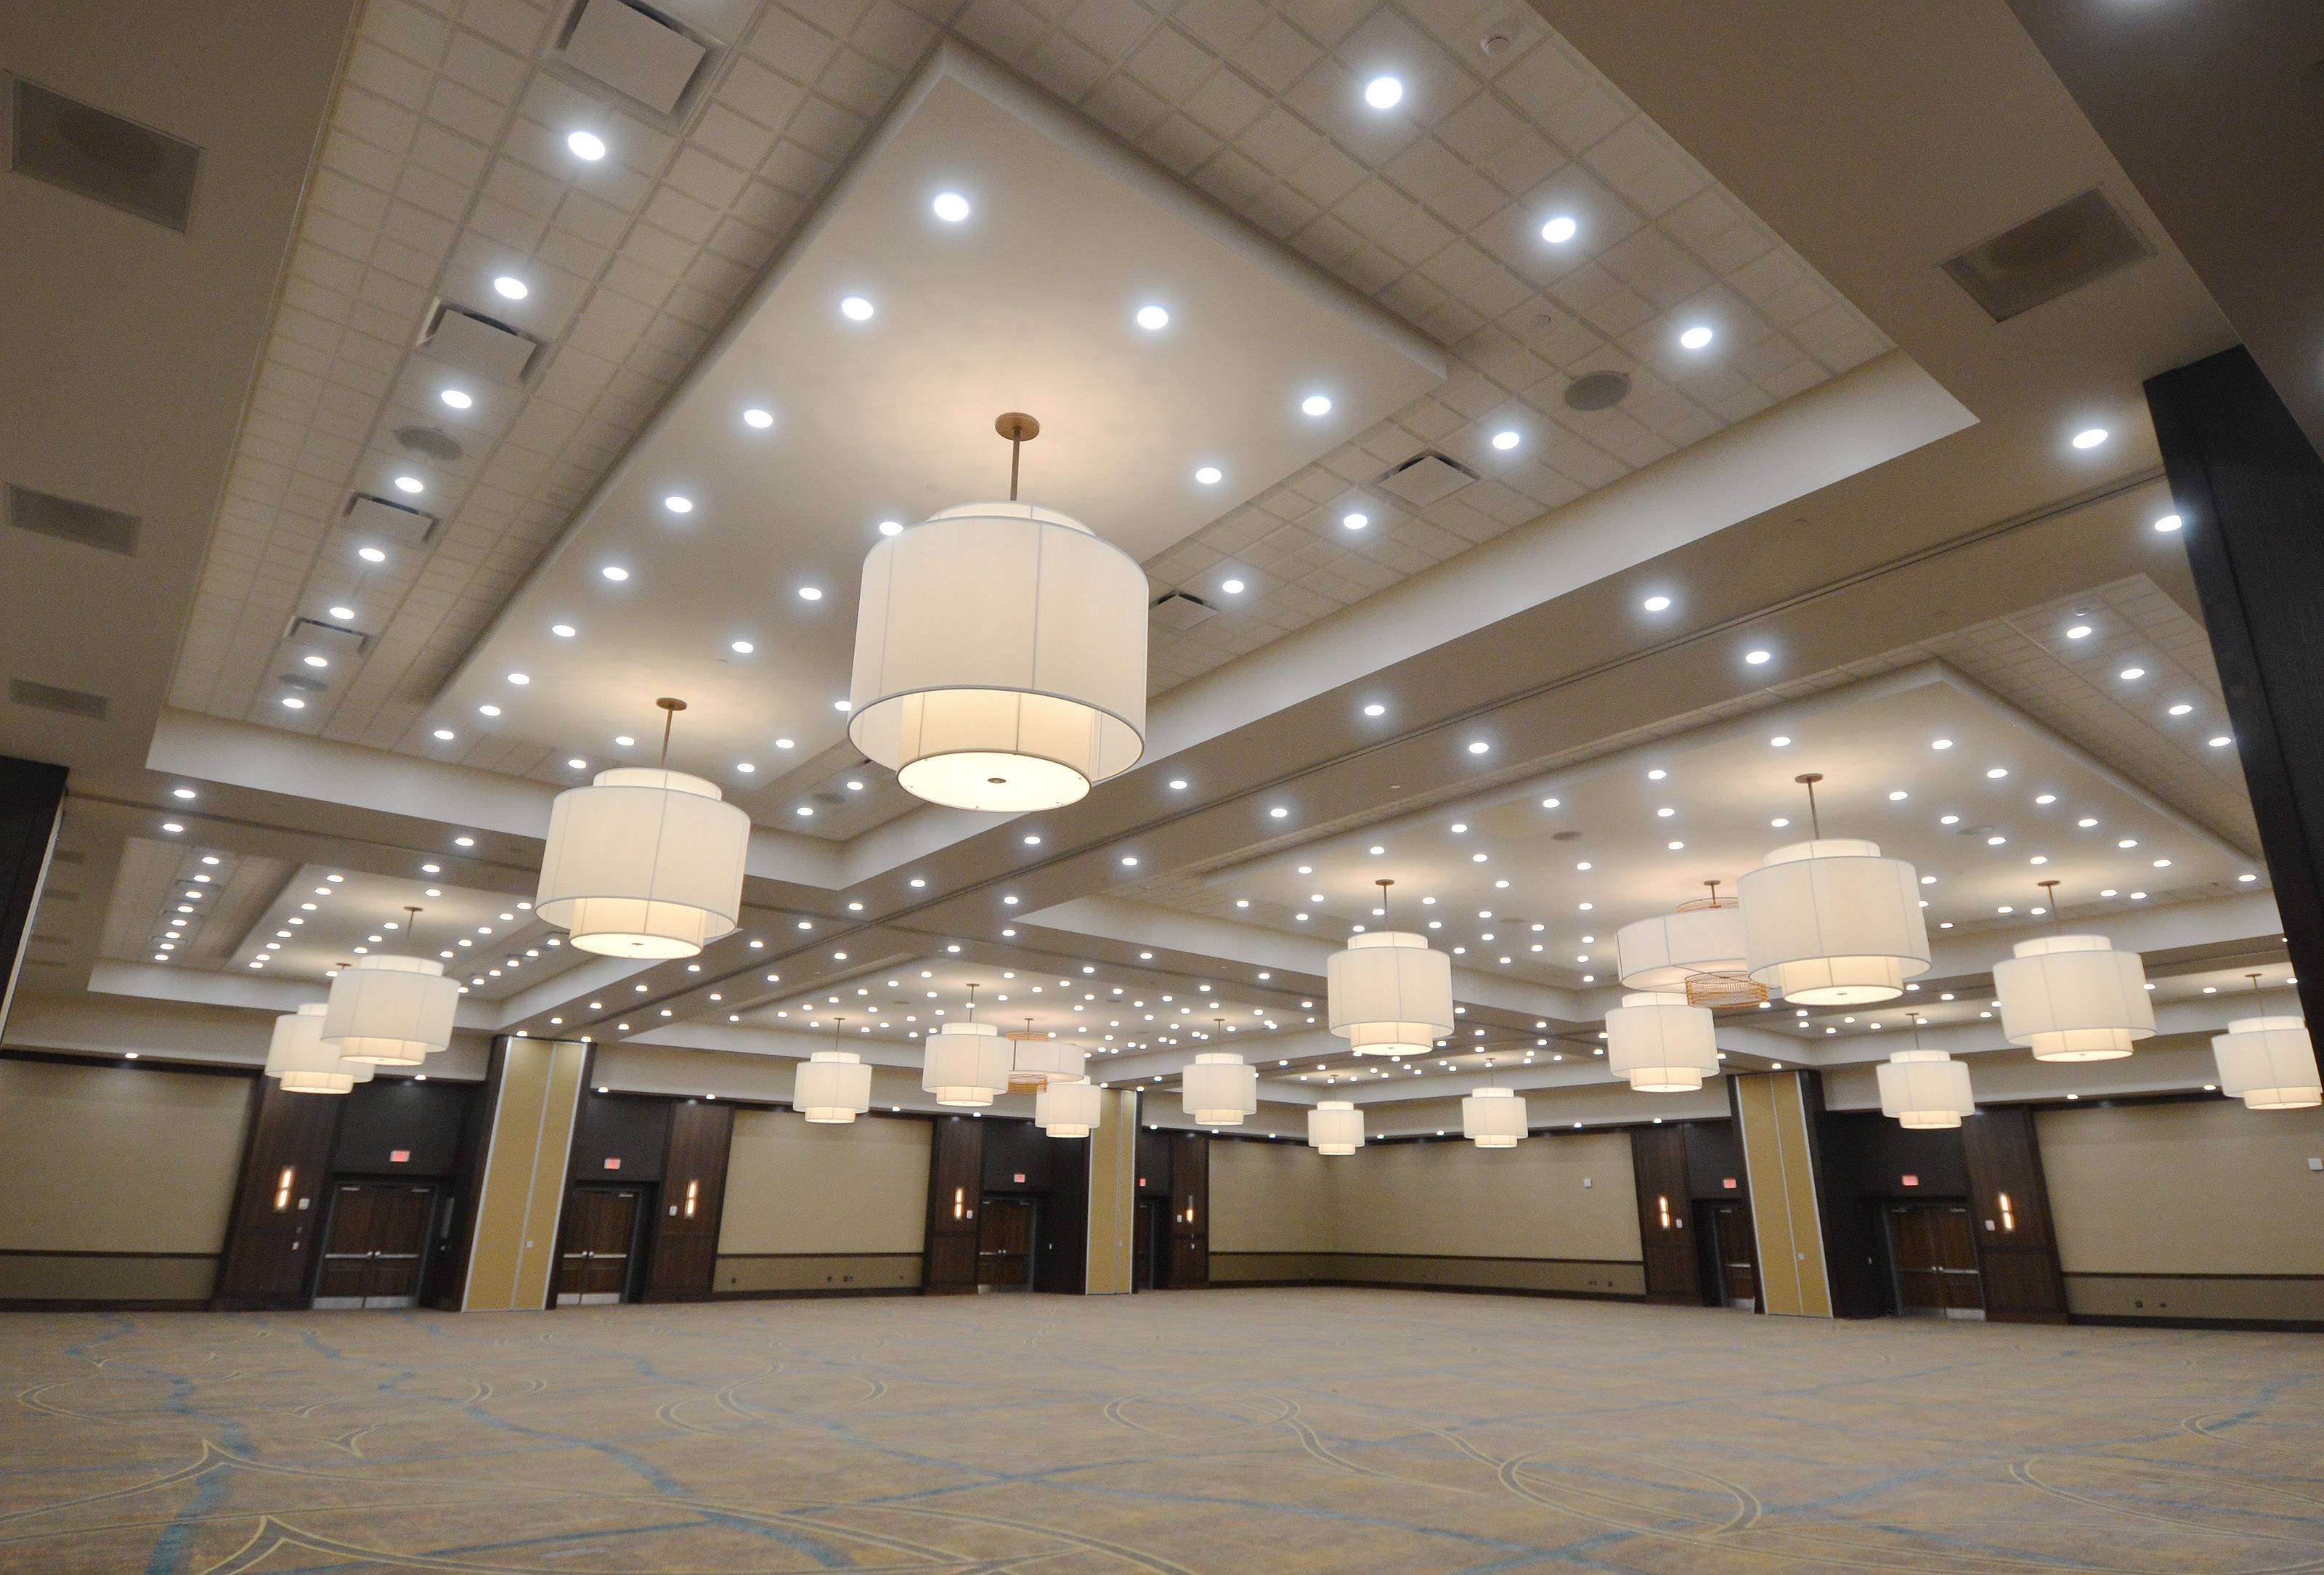 New hotel ups Naperville's banquet capacity